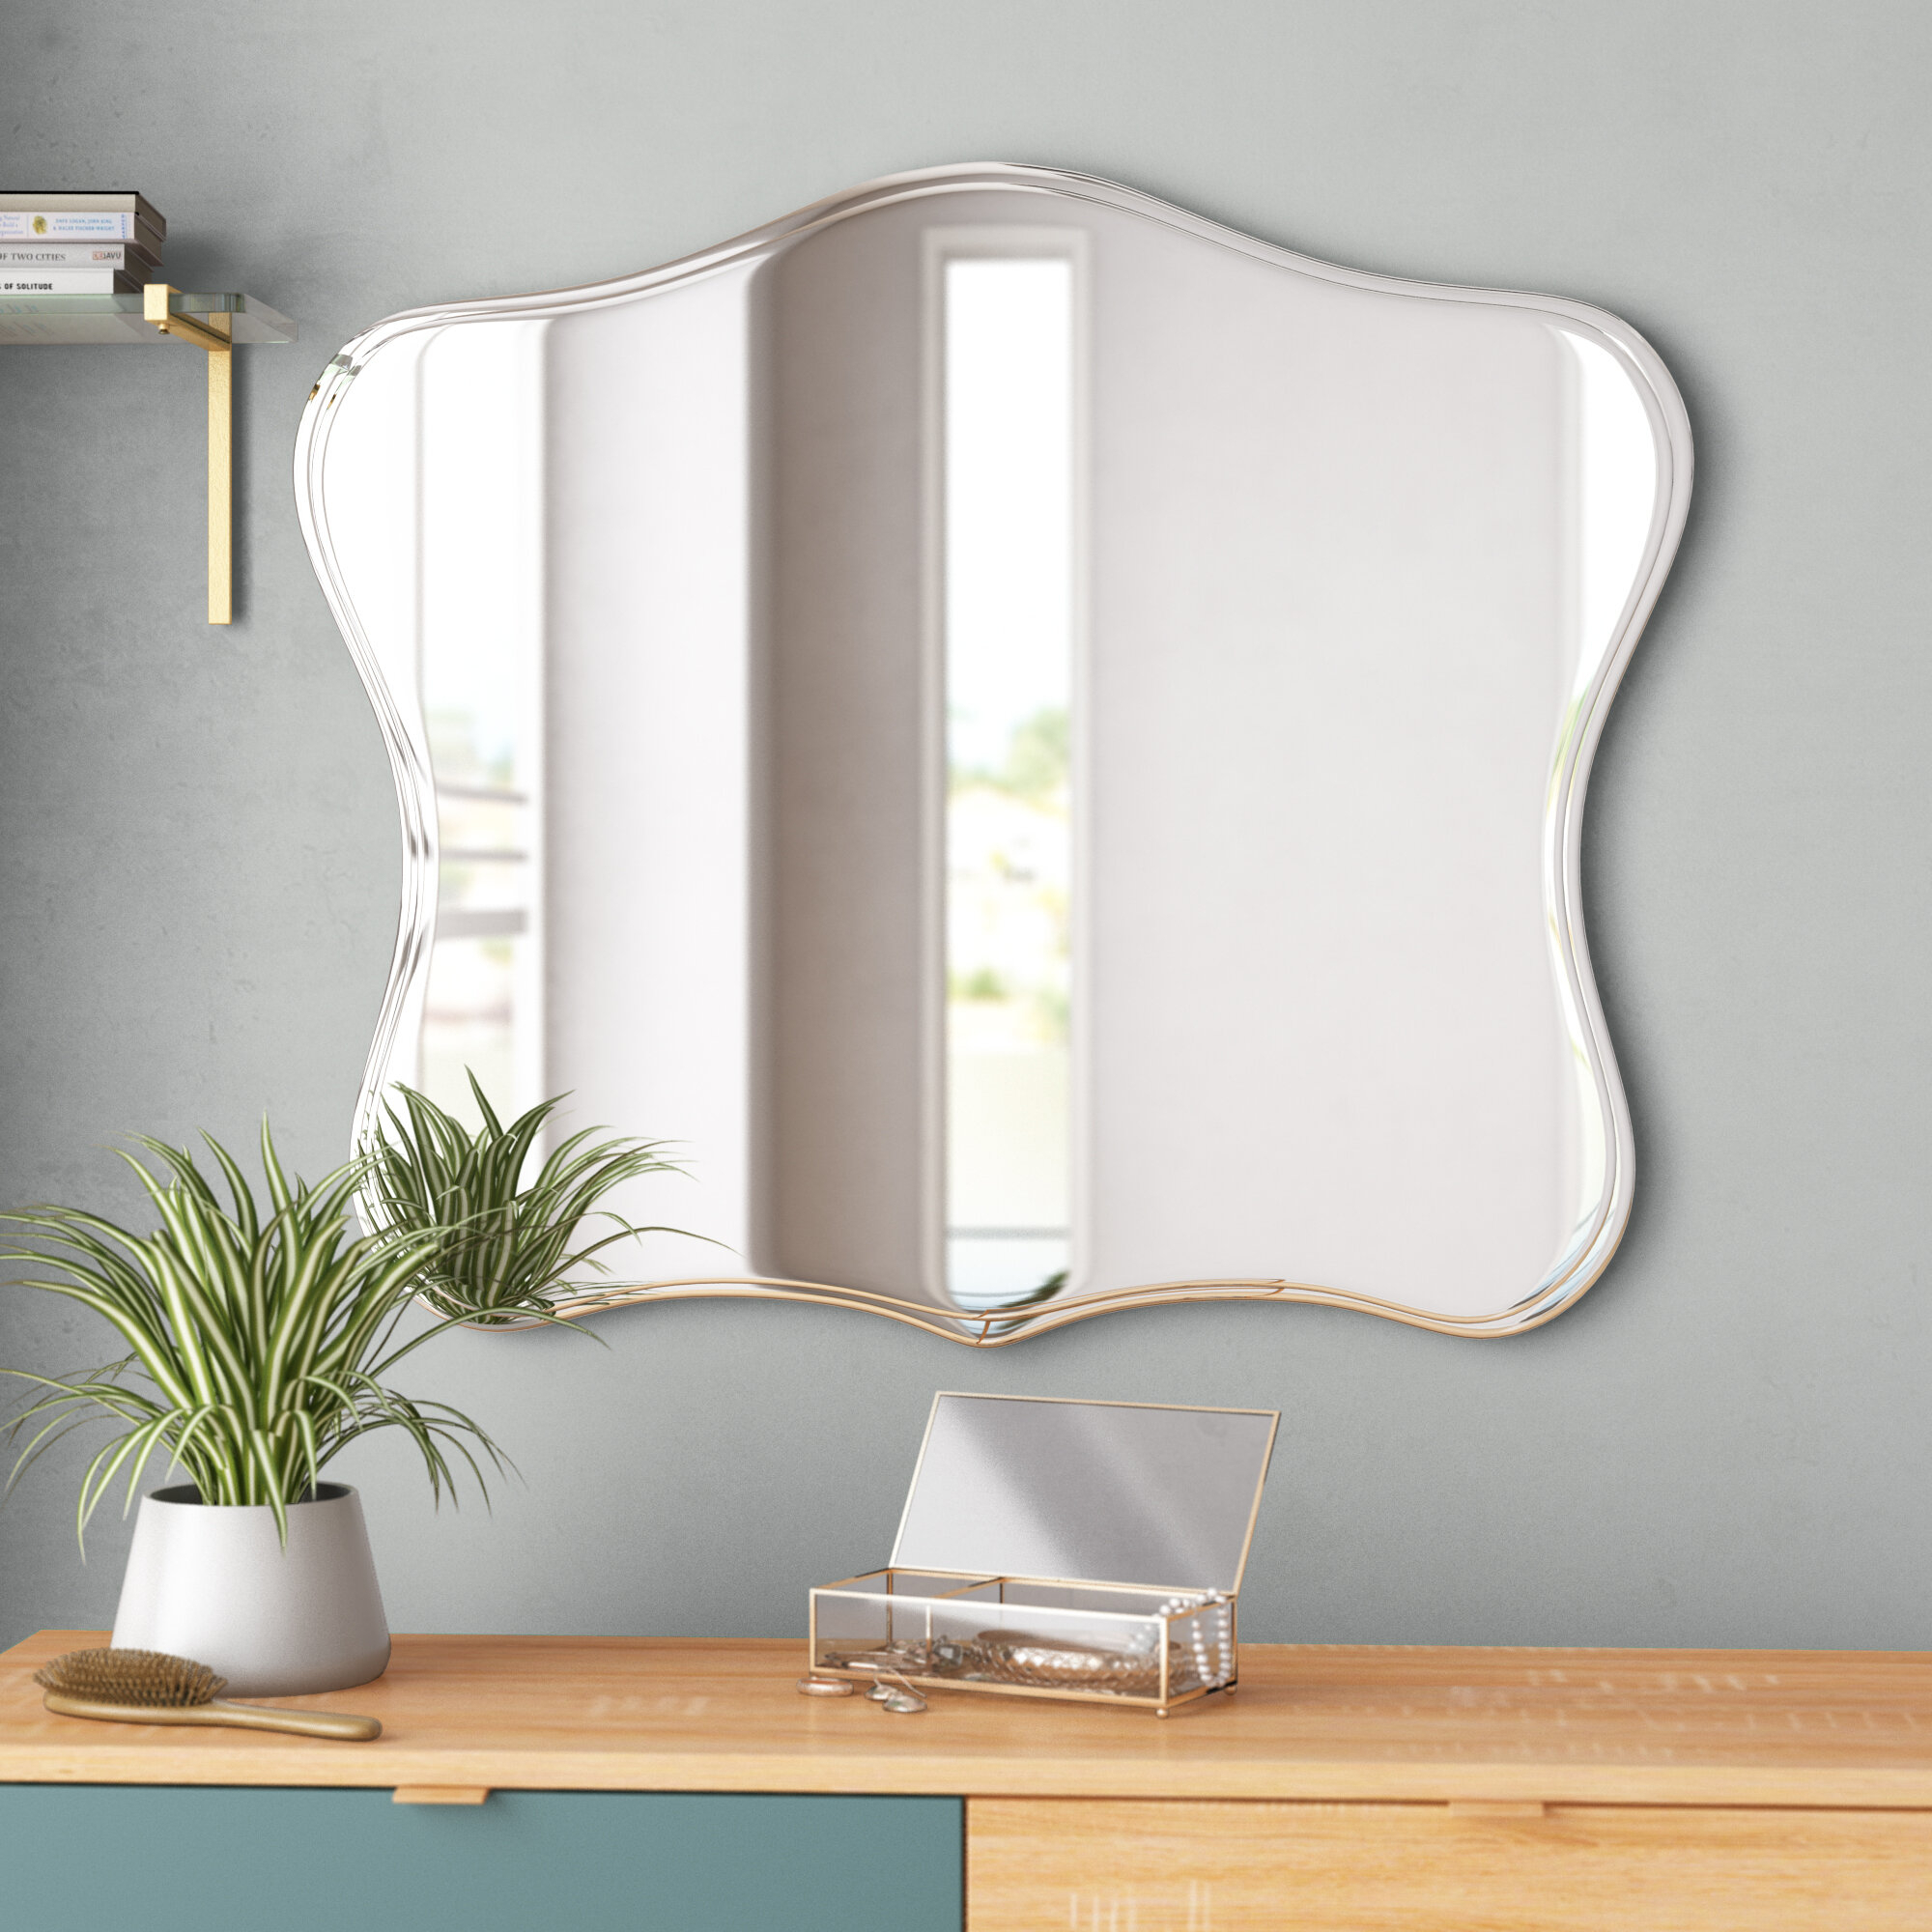 Titsworth Frameless Fancy Wall Mirror Intended For Logan Frameless Wall Mirrors (View 15 of 20)